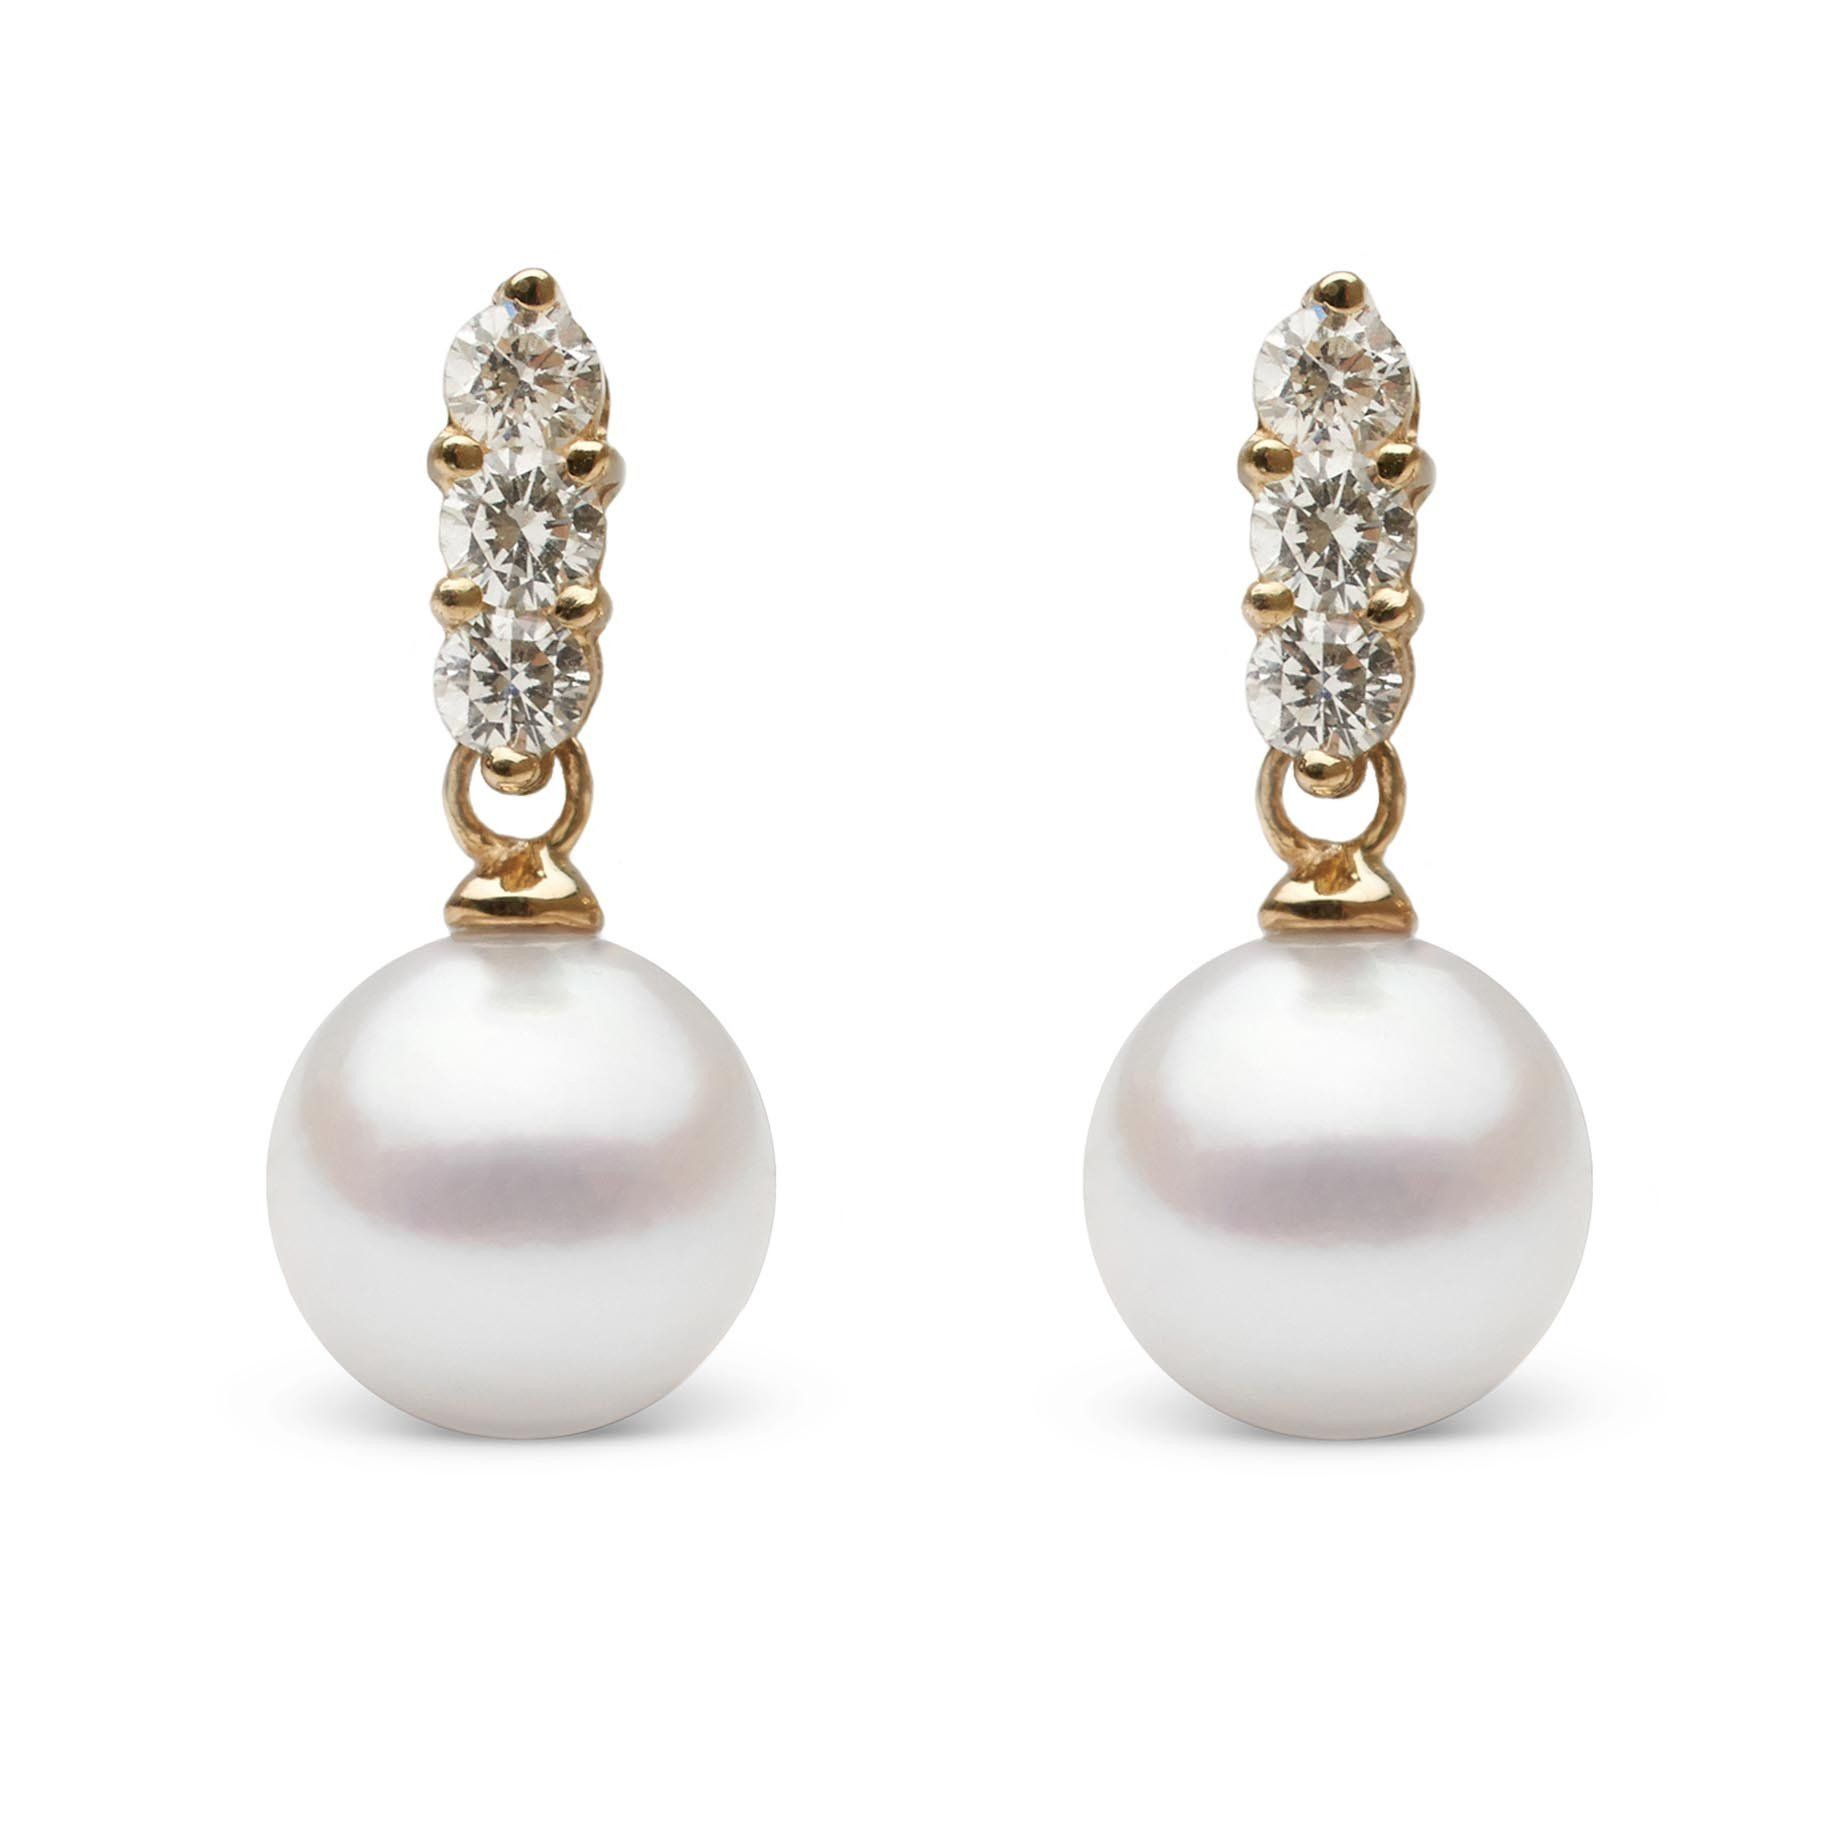 Trio Collection 8.0-8.5 mm Akoya Pearl and Diamond Earrings